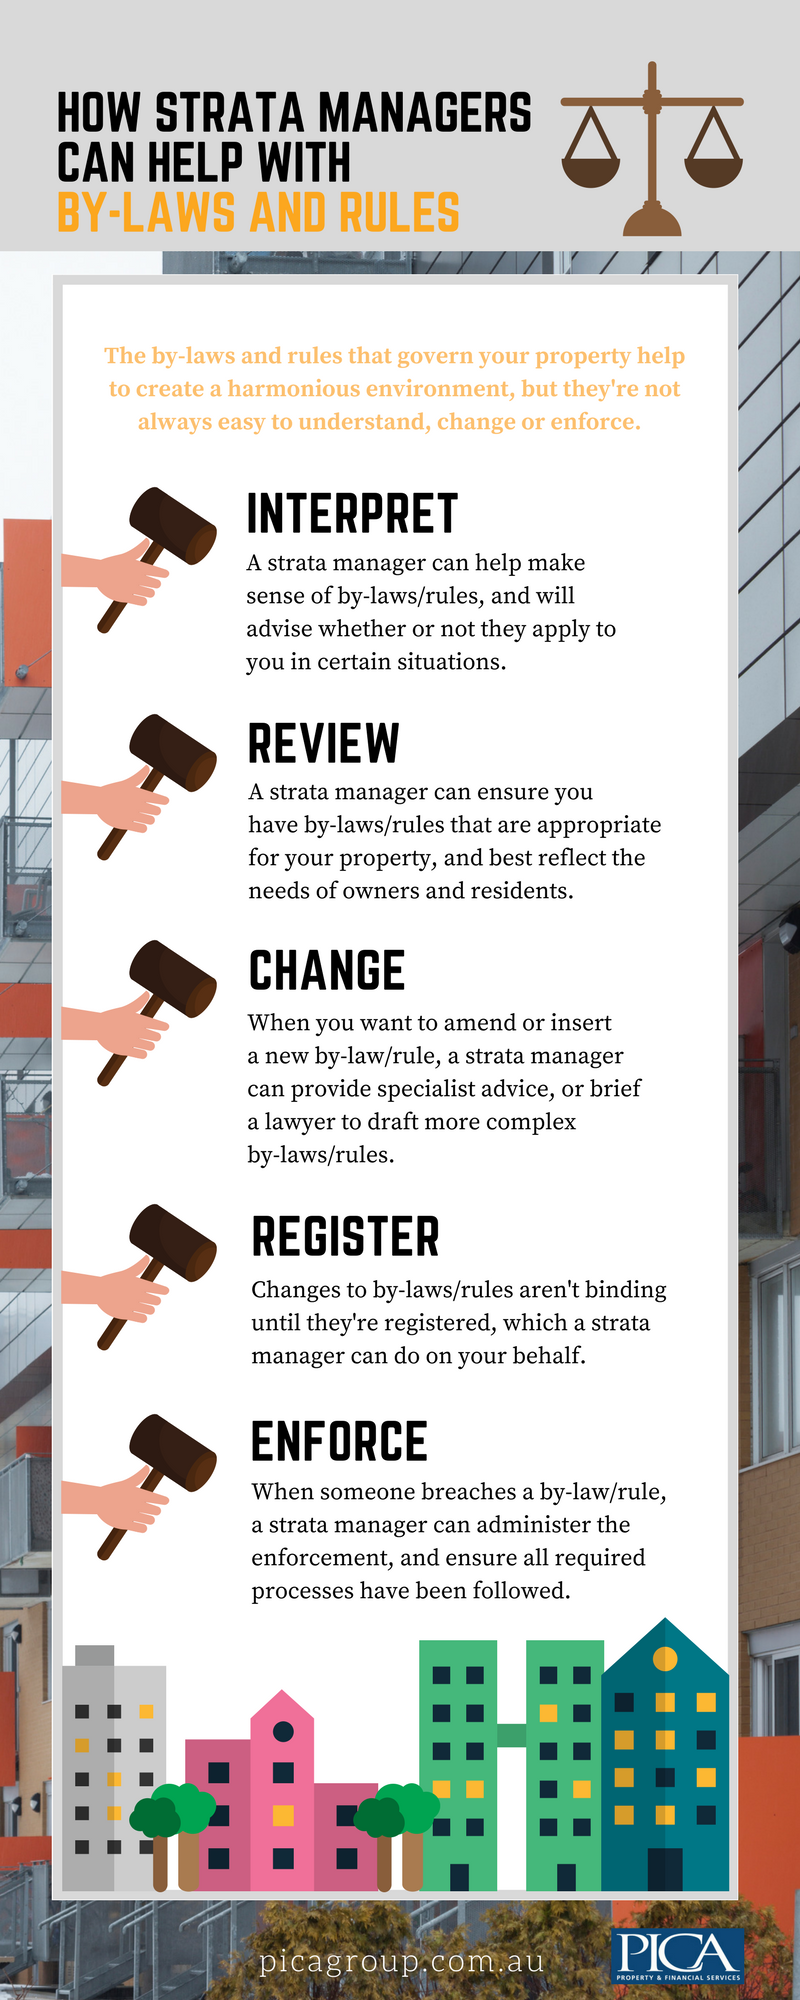 How strata managers can help with by-laws and rules